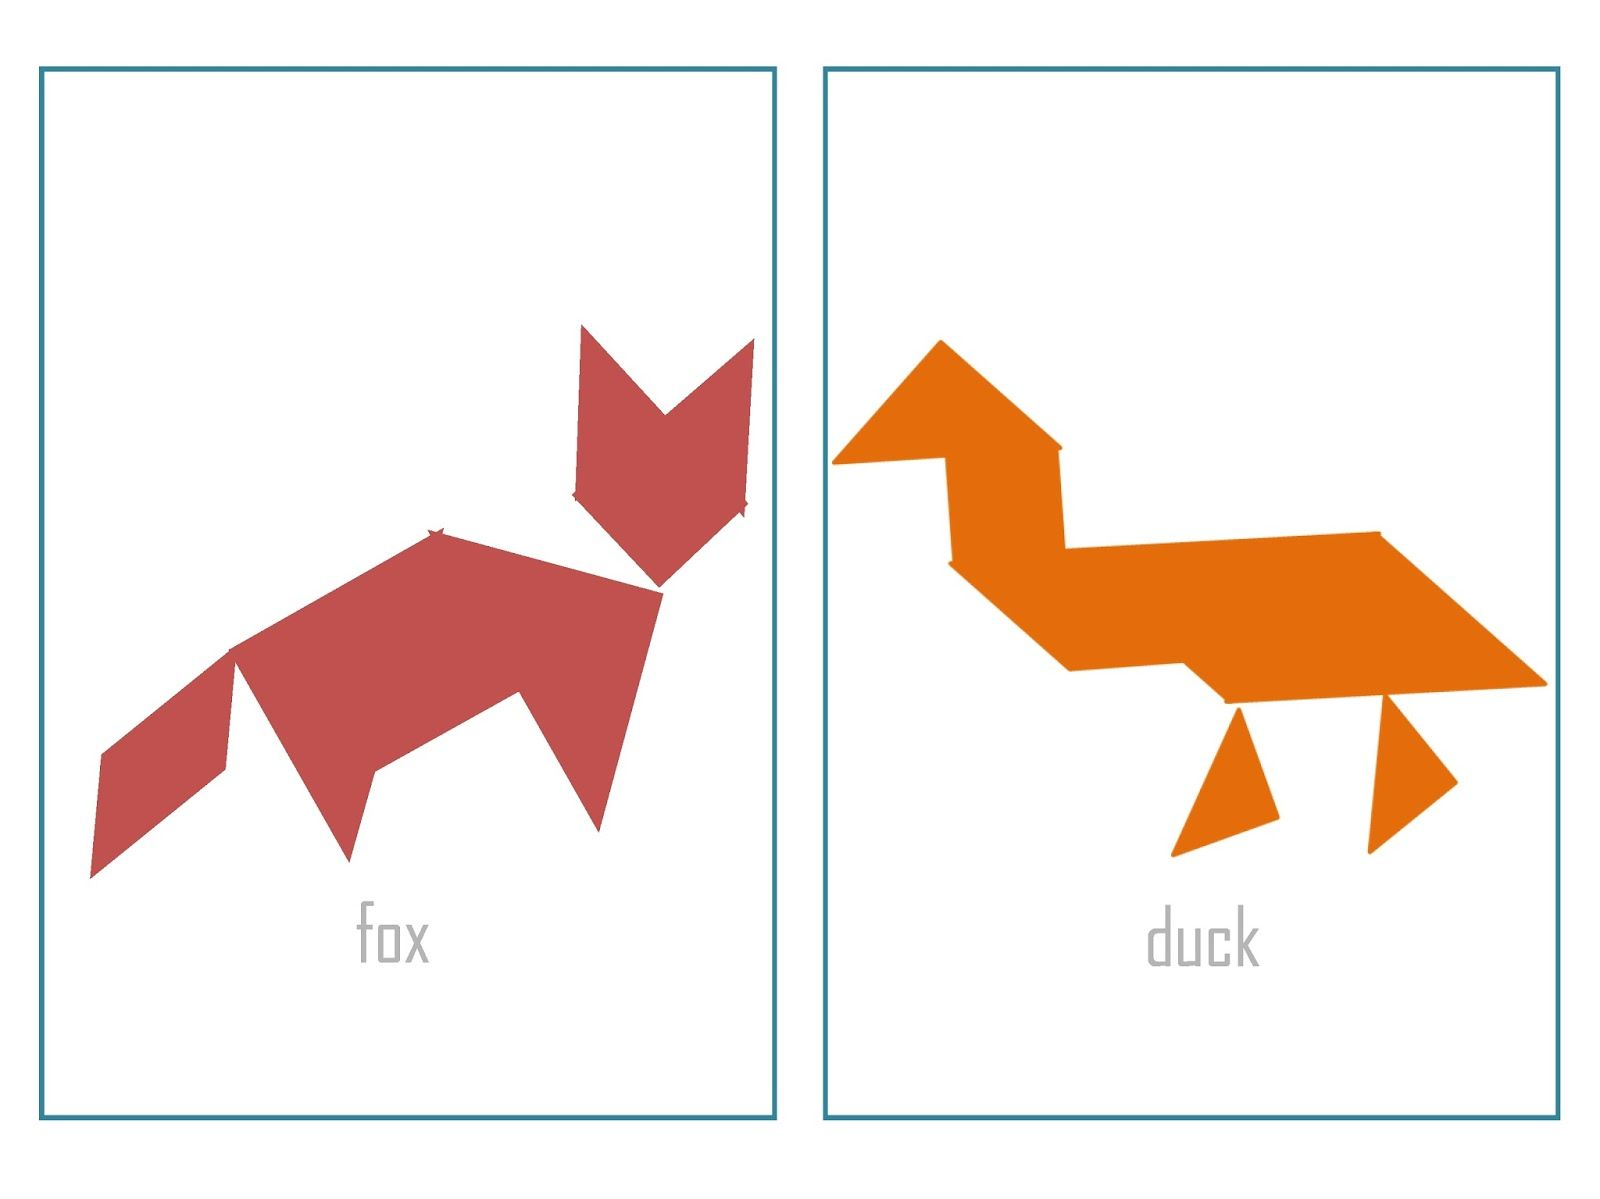 Here S A Set Of Tangram Puzzles With And Without Outlines